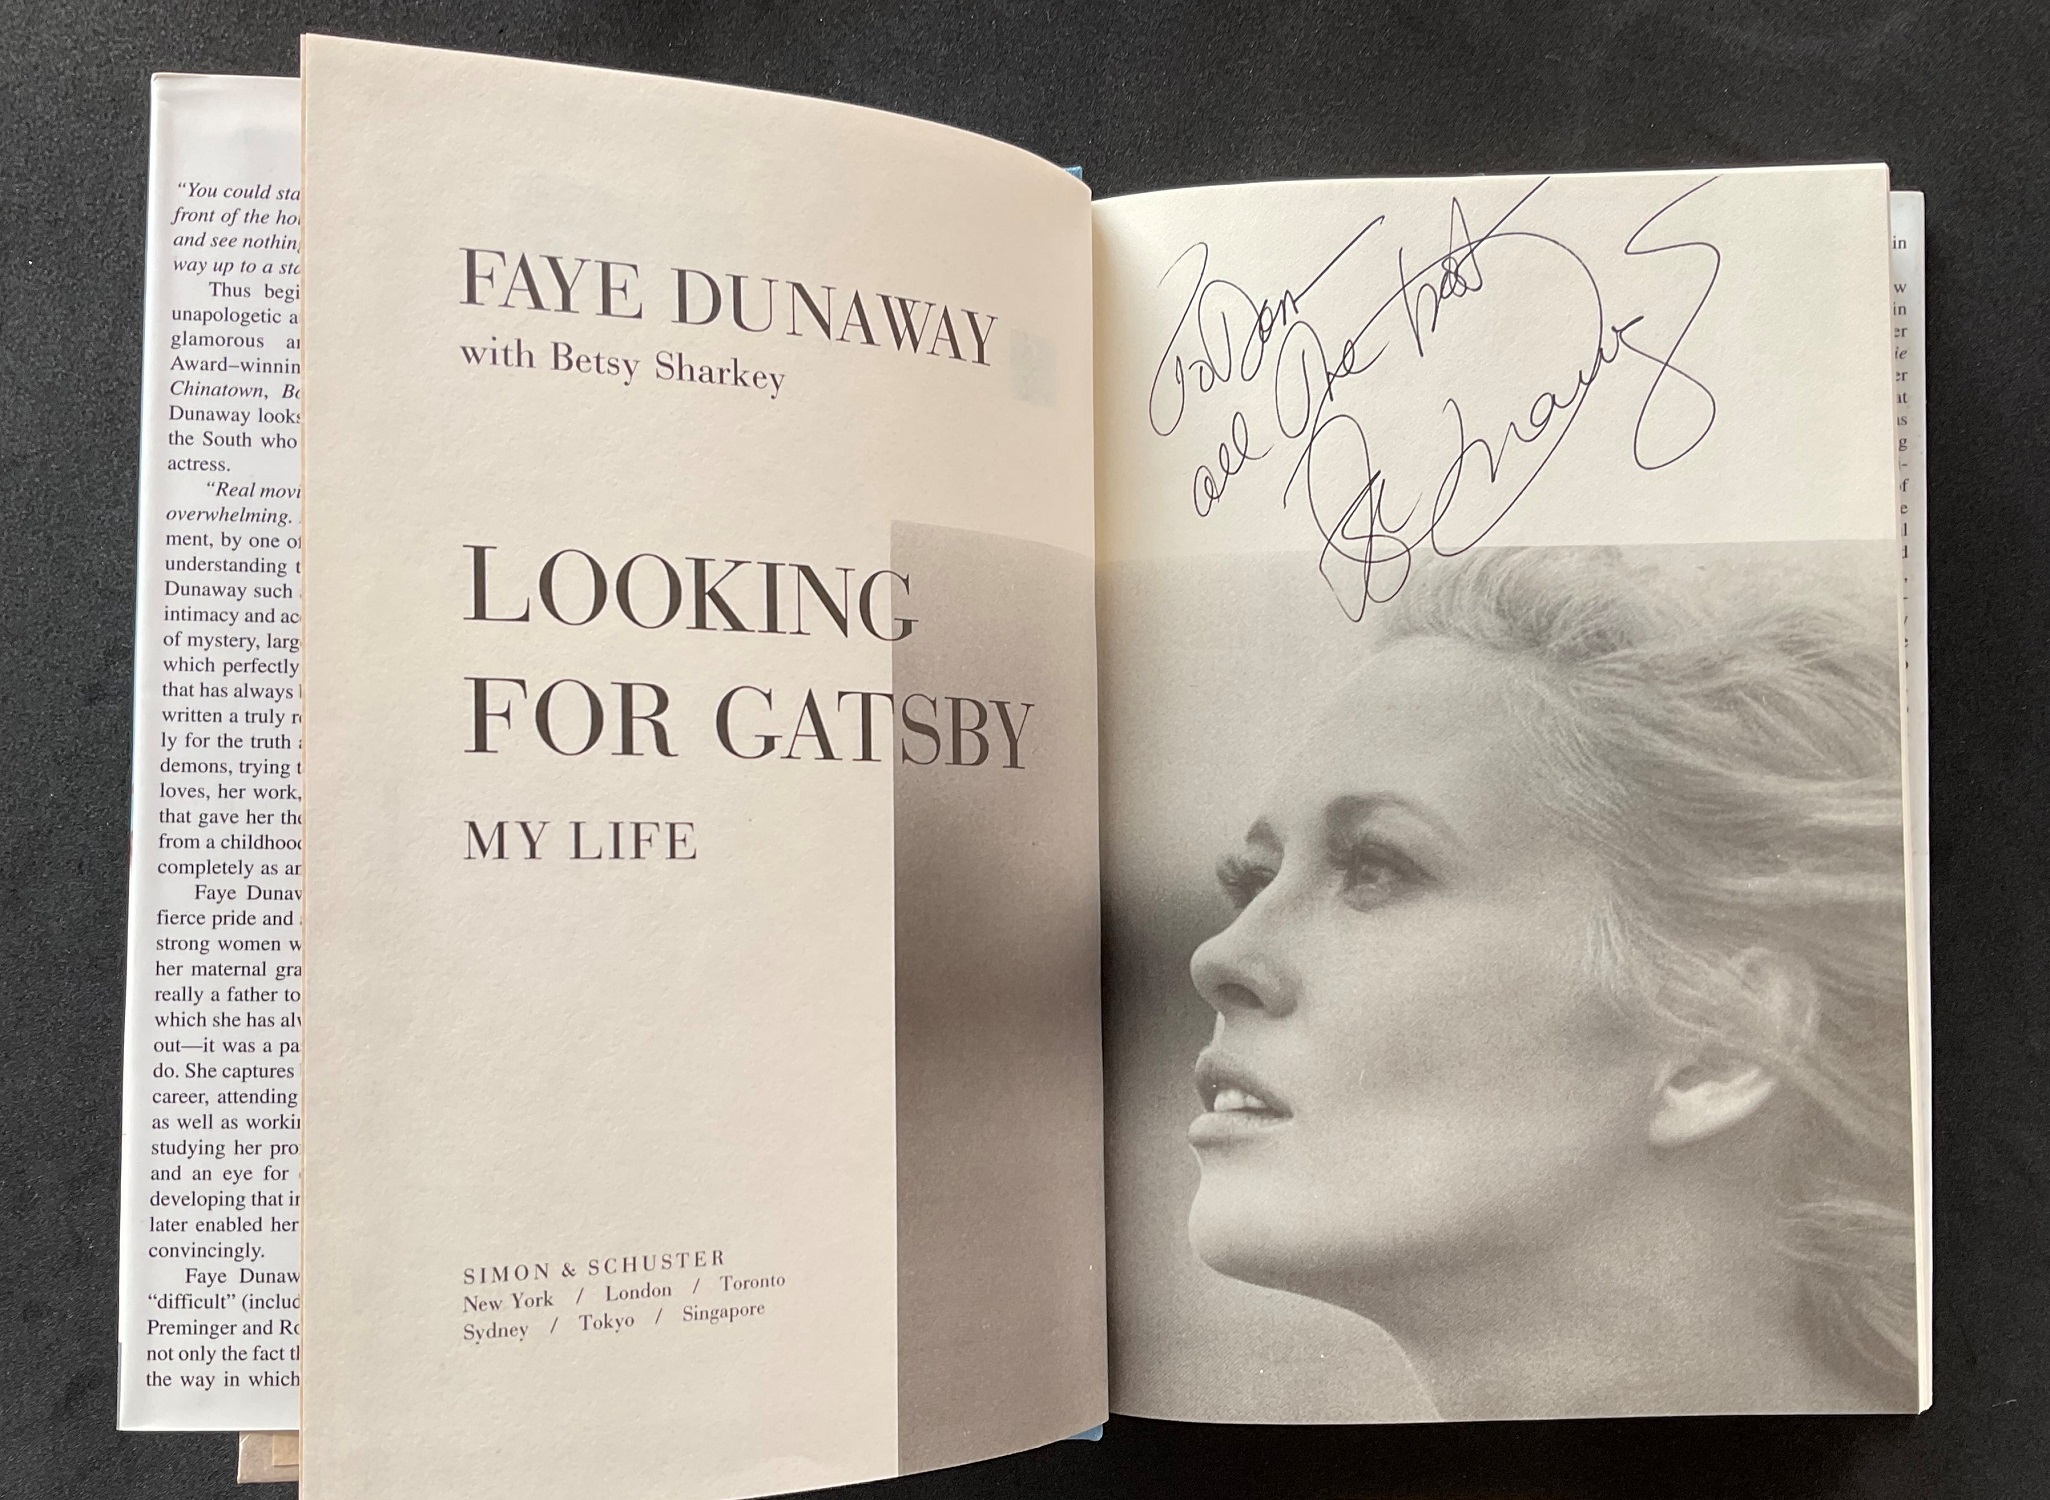 Actress Faye Dunaways autobiography Looking for Gatsby, signed and dedicated to Don. Dorothy Faye - Image 2 of 3